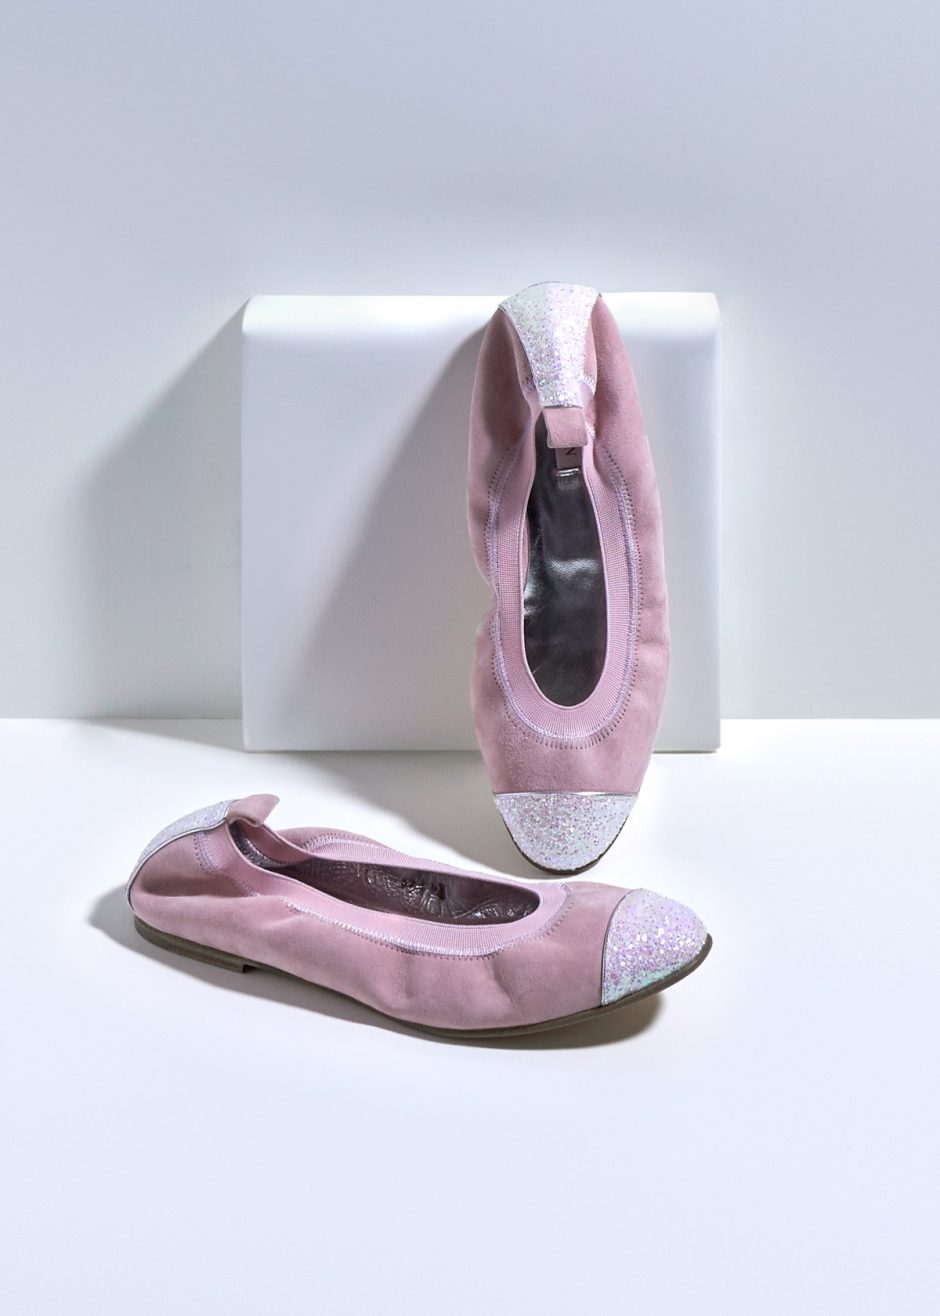 Kate – Ballet flat pink kidskin suede with pink glitter toe cap and heel